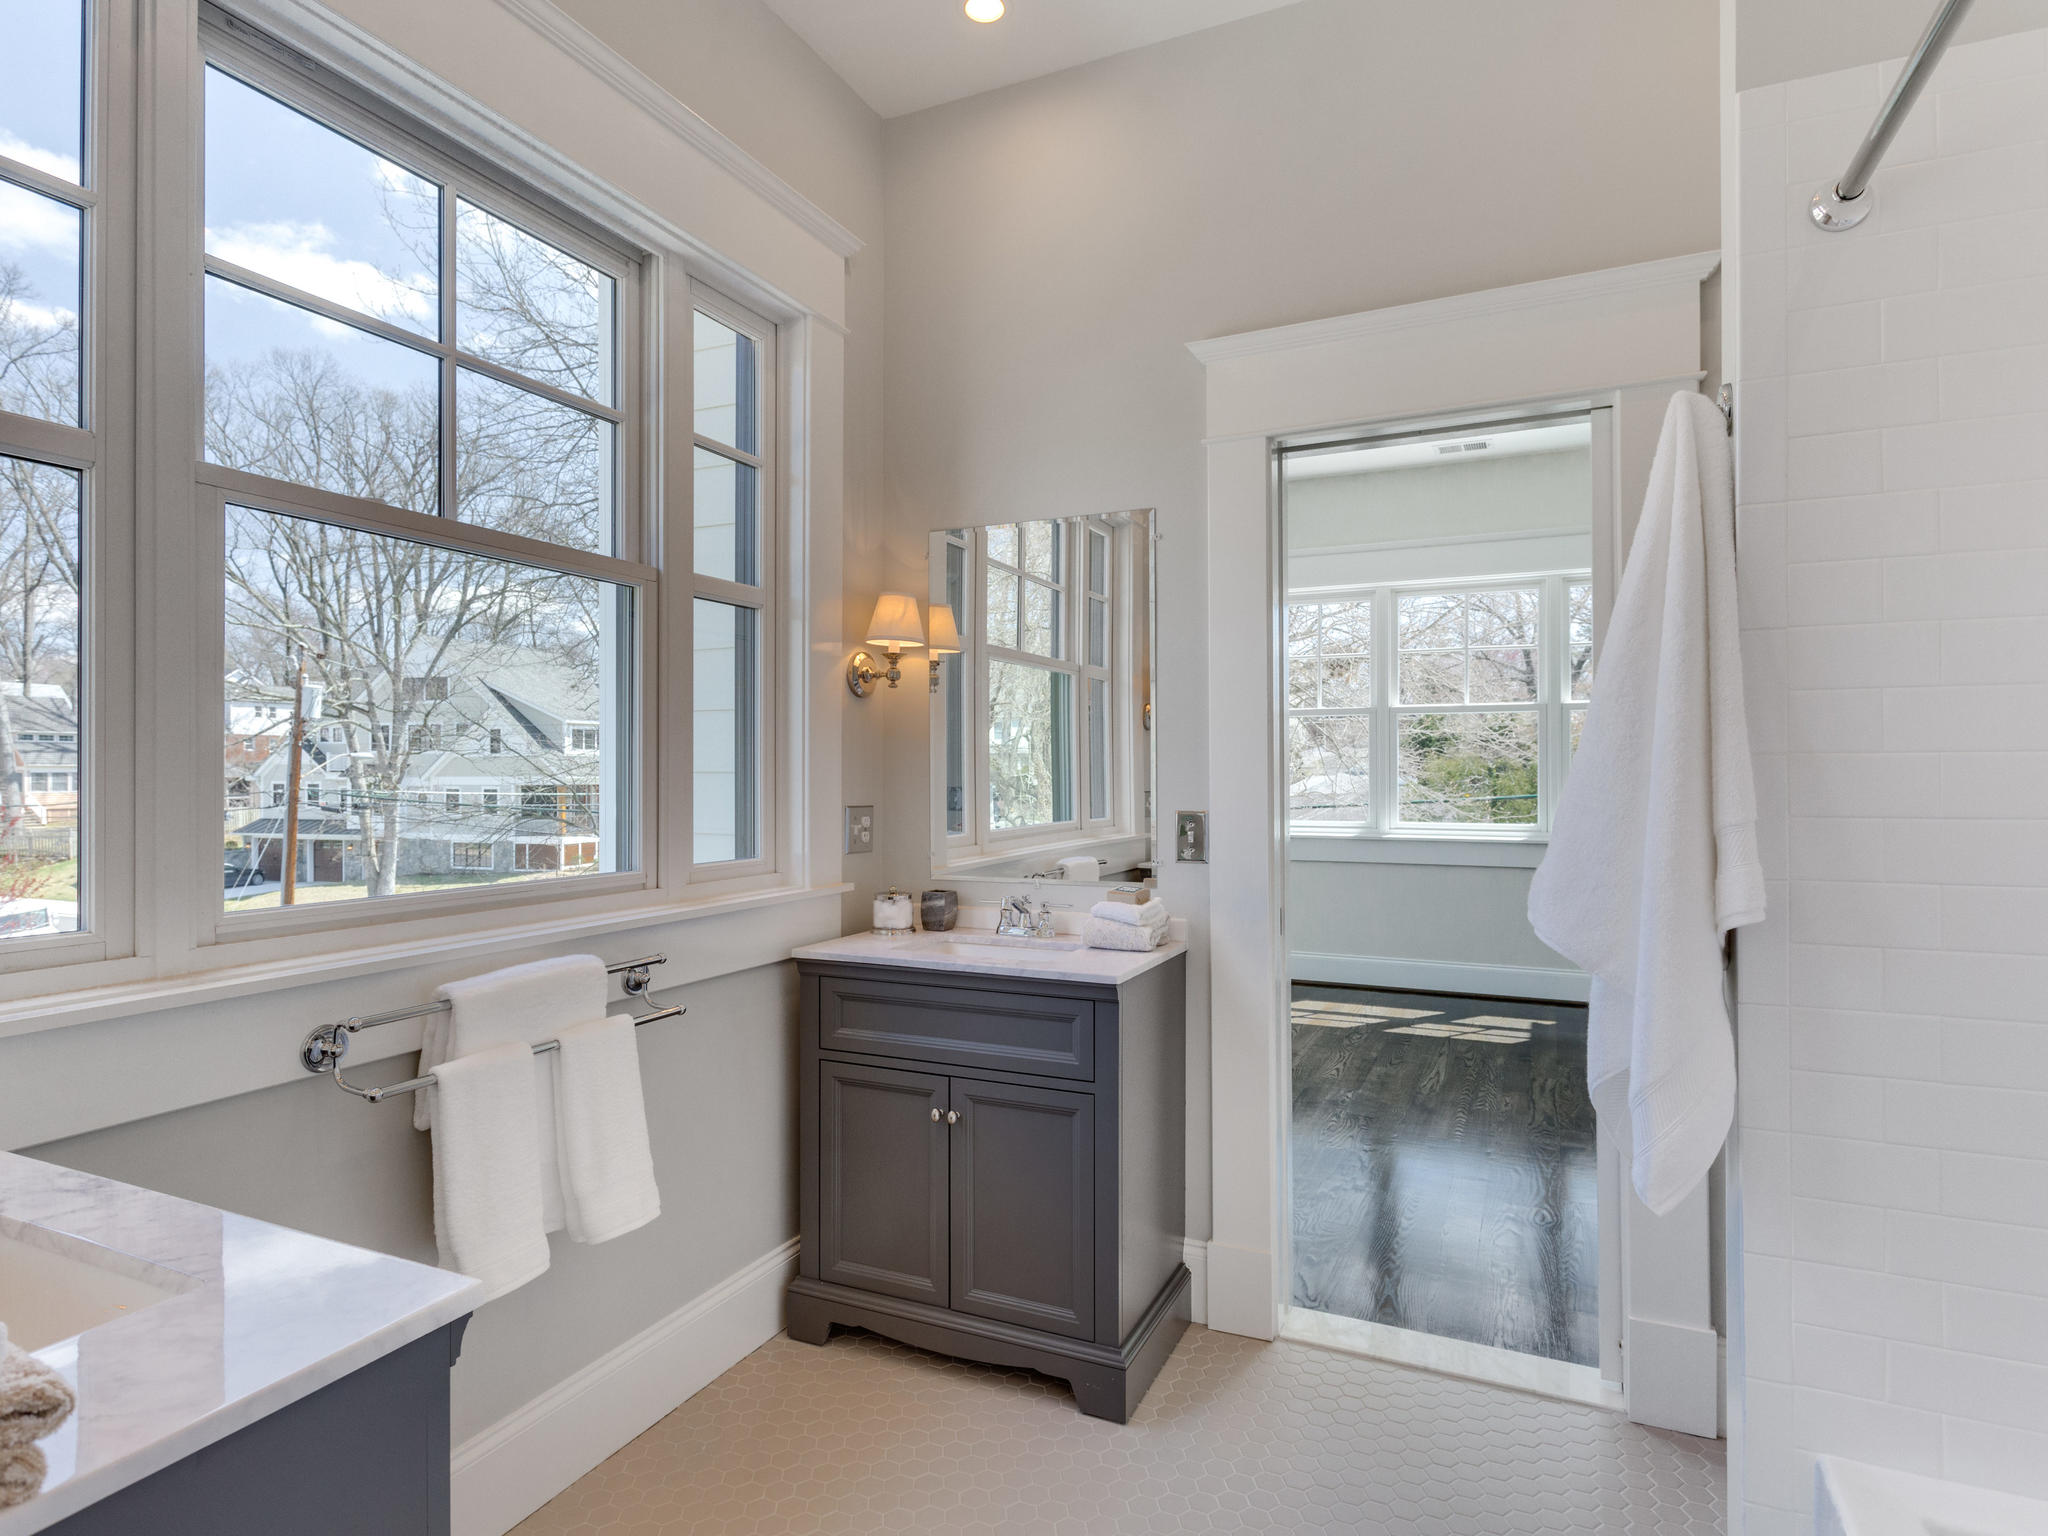 Jack and Jill bathroom with matching vanities. Custom Home by Custom Builder, North Arlington, VA 22207